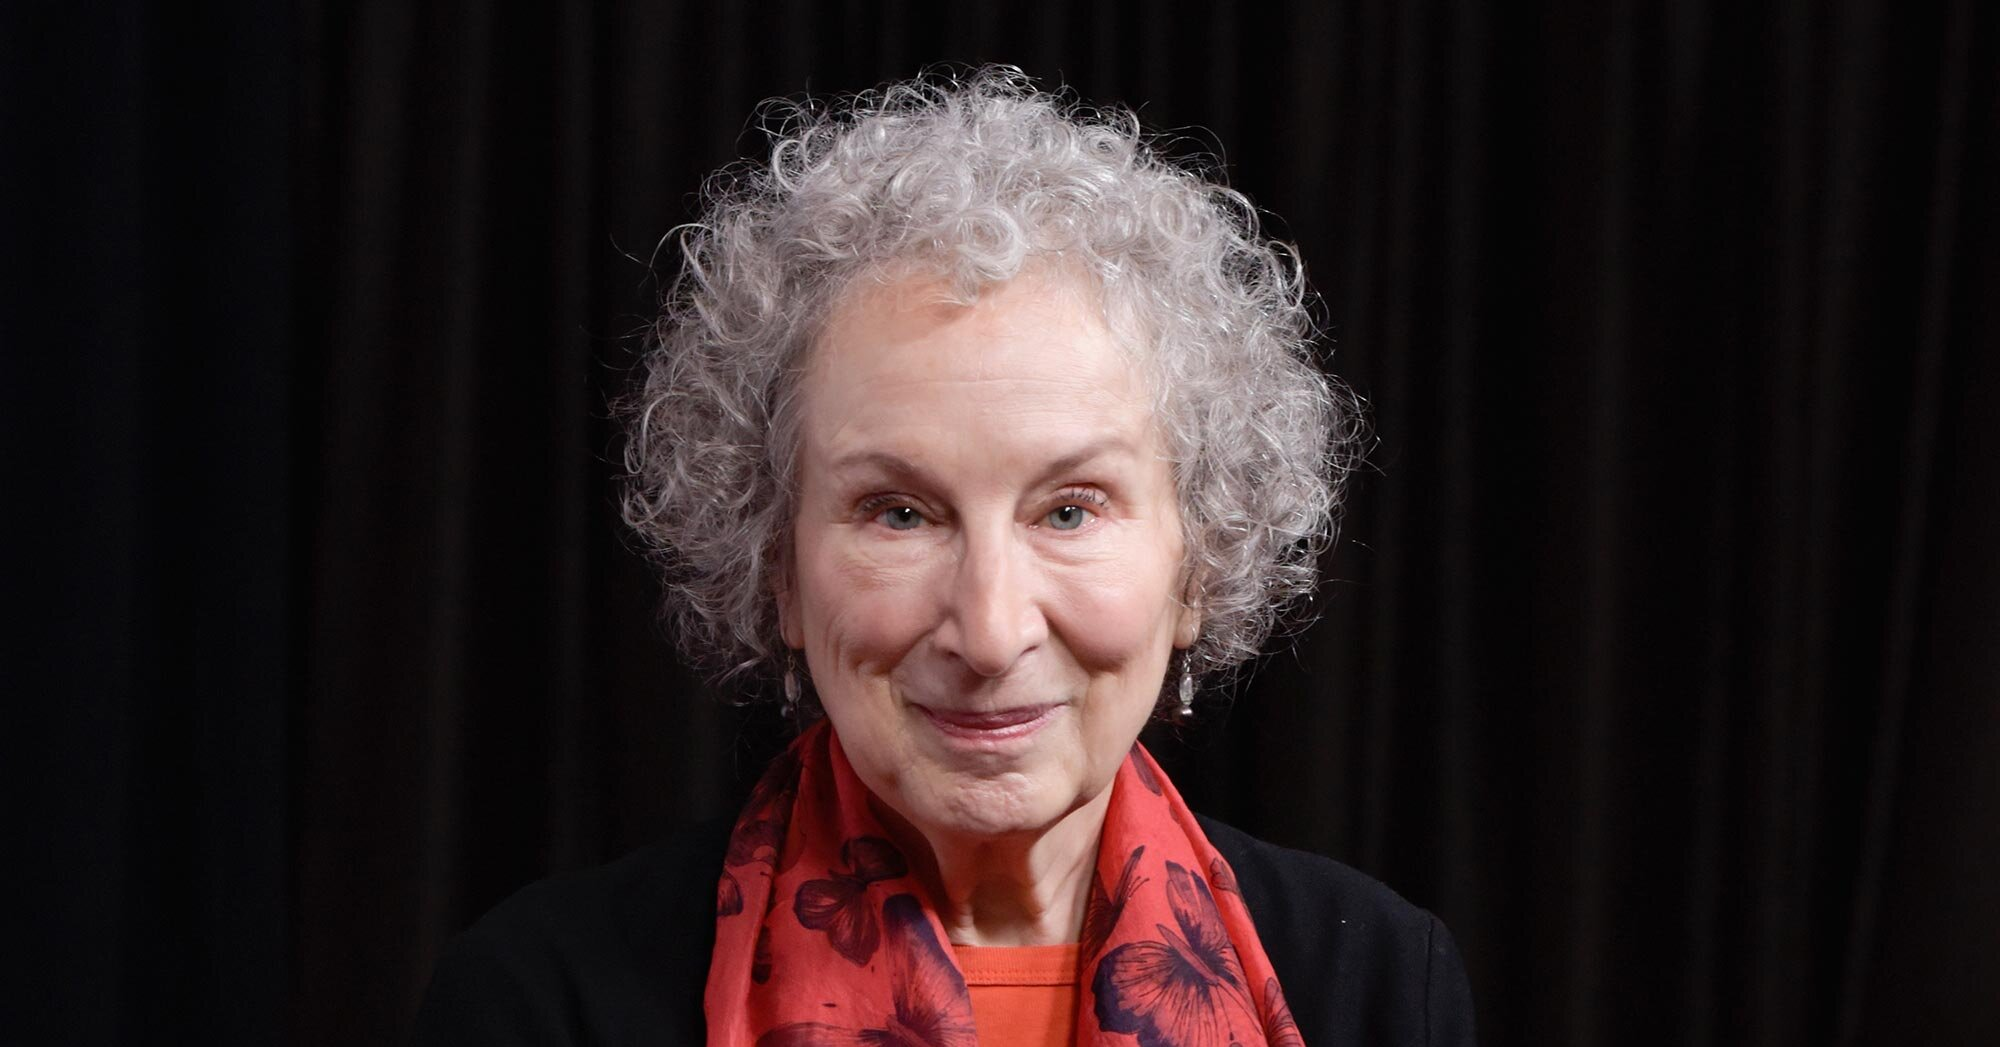 Margaret Atwood shares recommendations for books to read while self-isolating